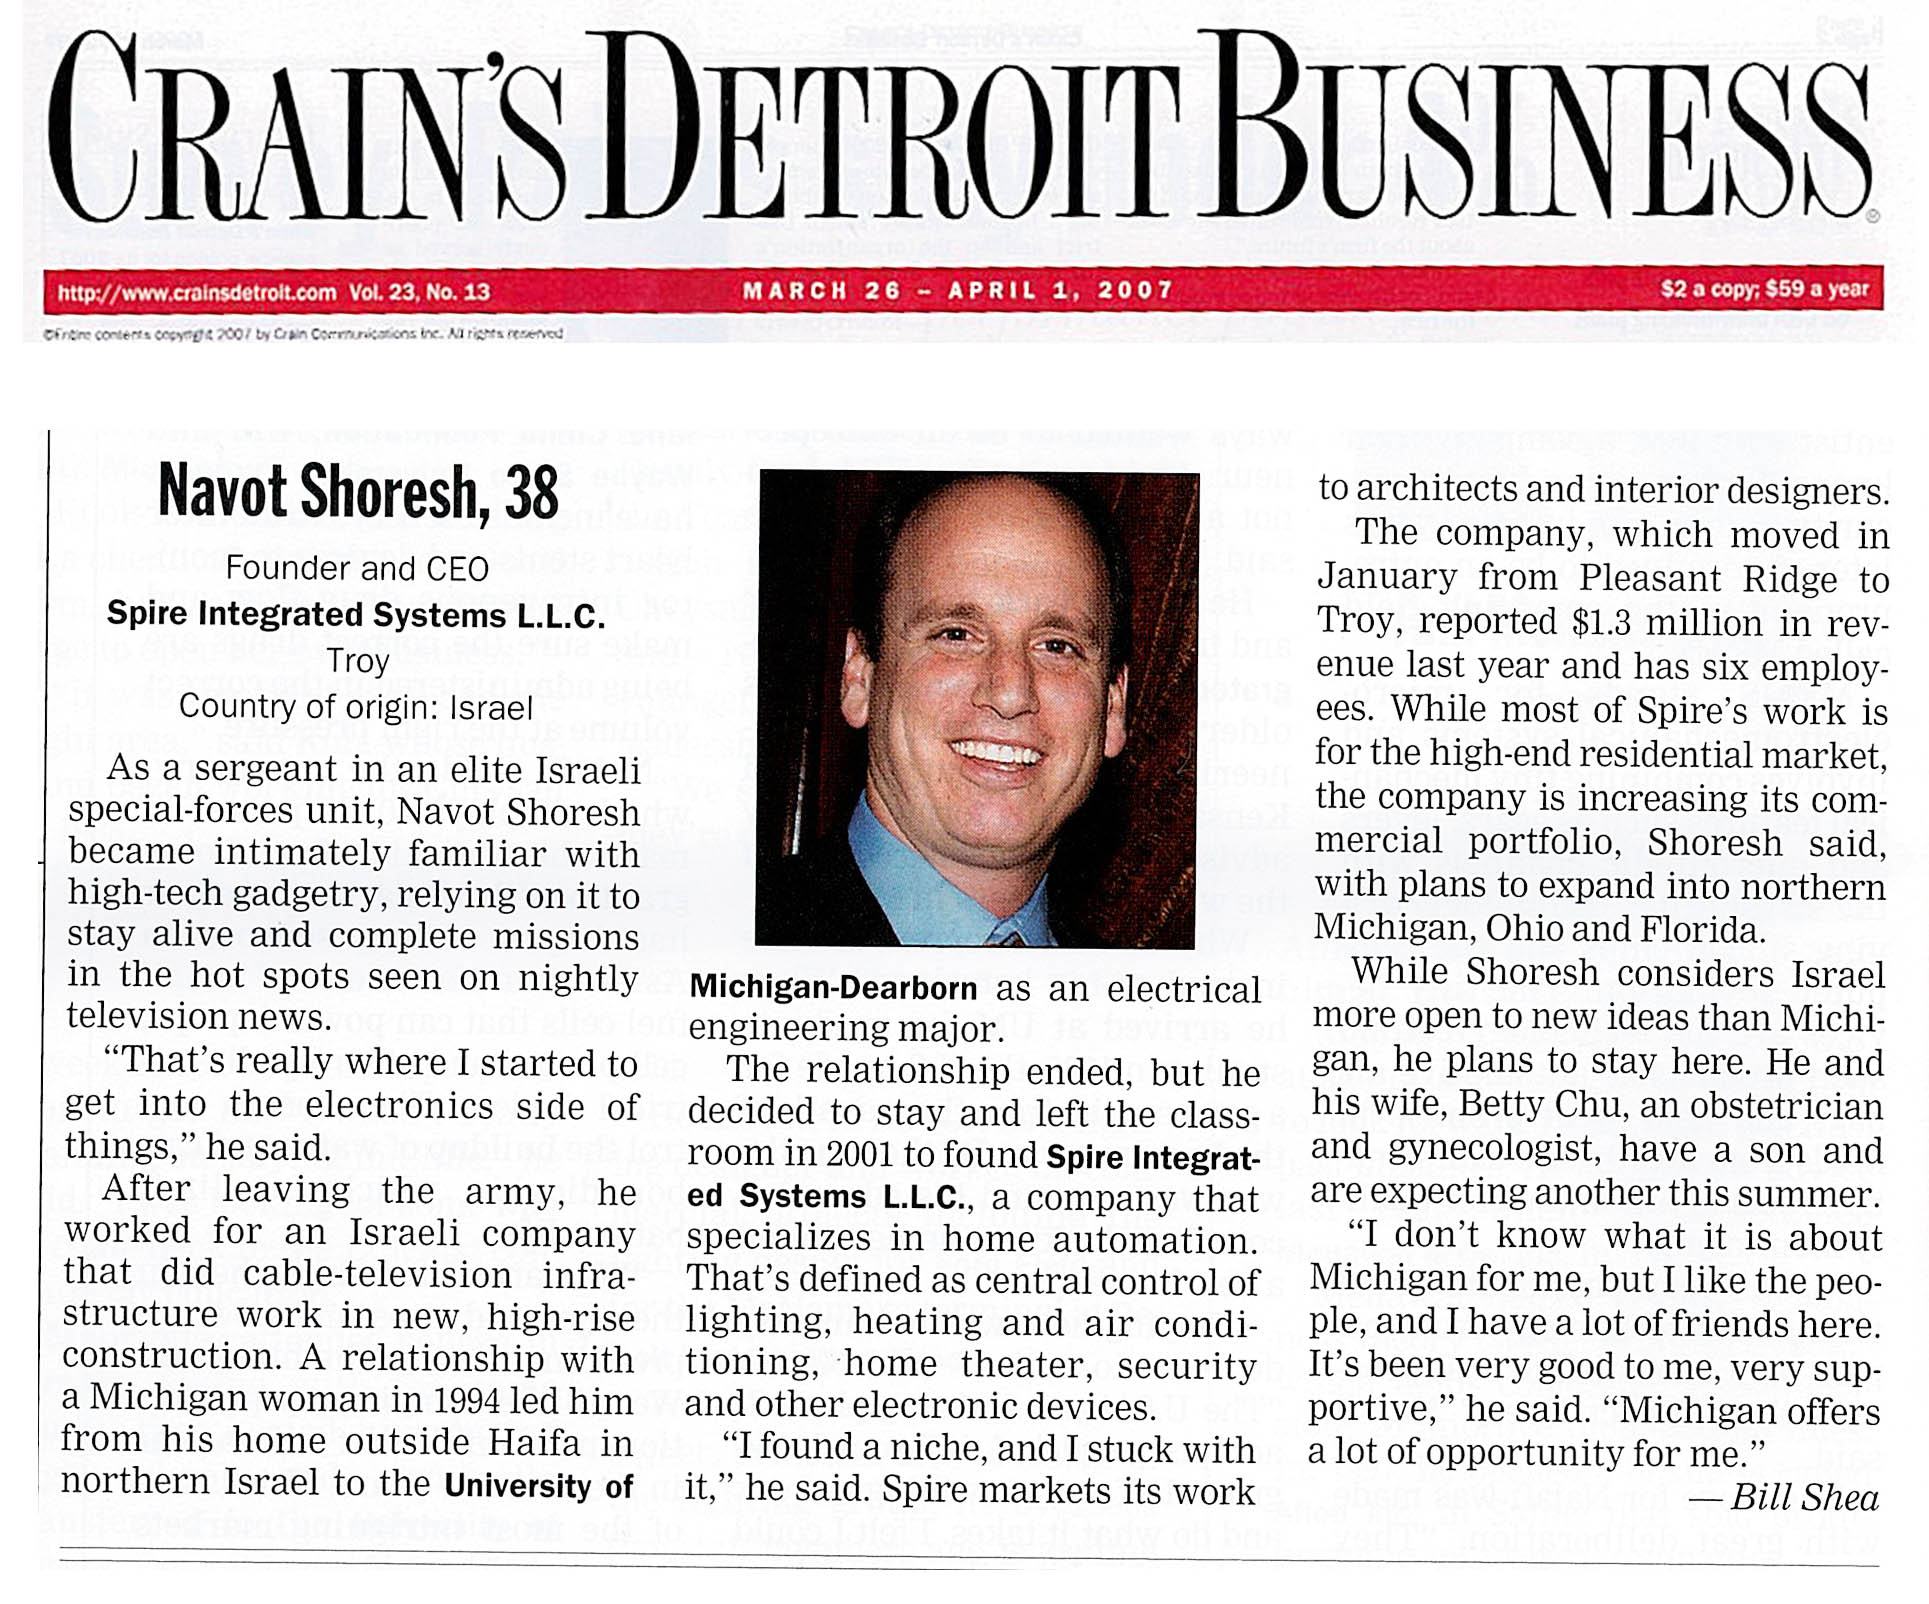 Navot Shoresh featured in Crain's Detroit Business